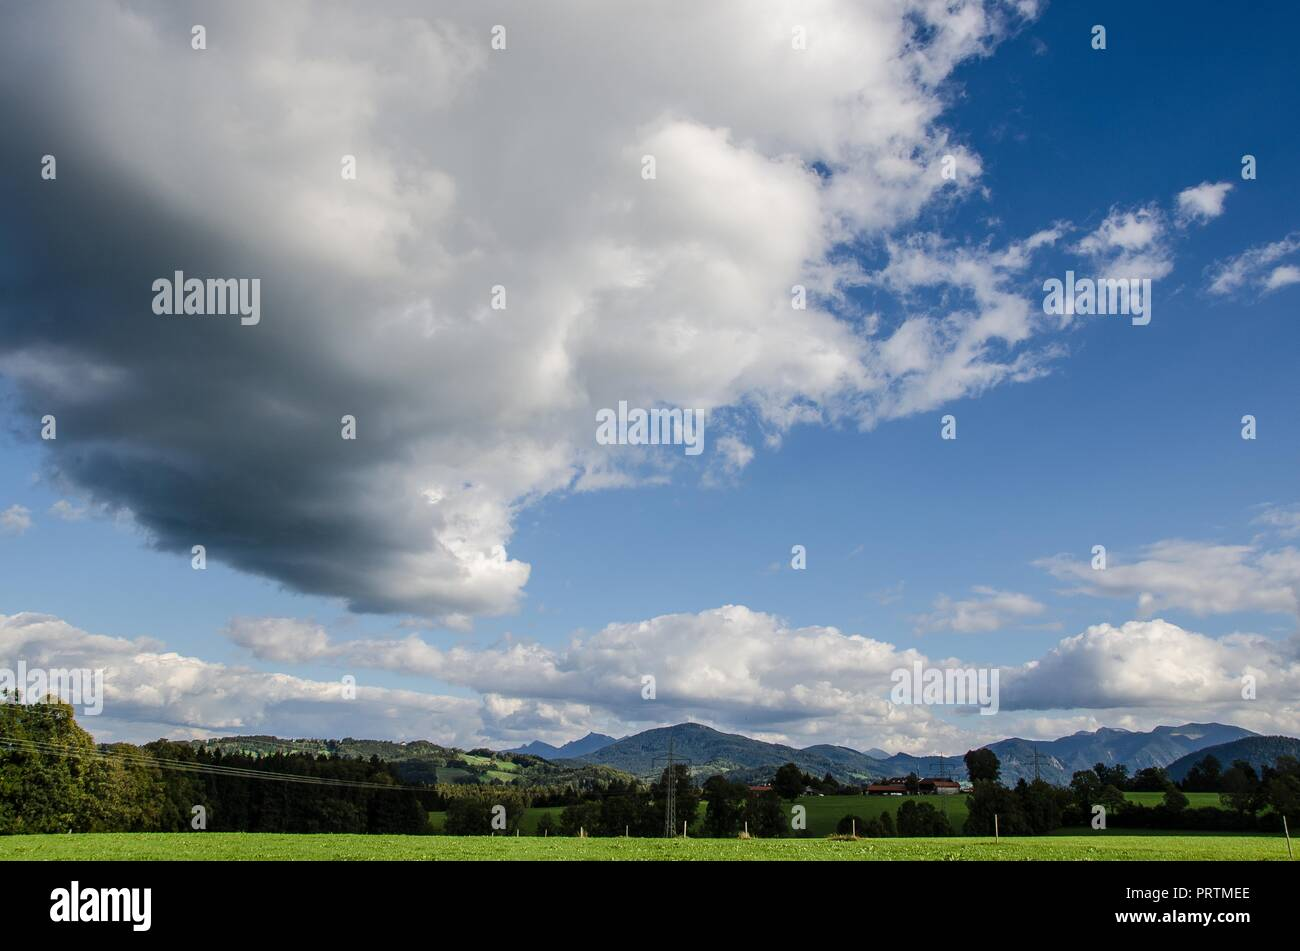 Clouds over the Bavarian Alps - Clouds are given different names based on their shape and their height in the sky. - Stock Image